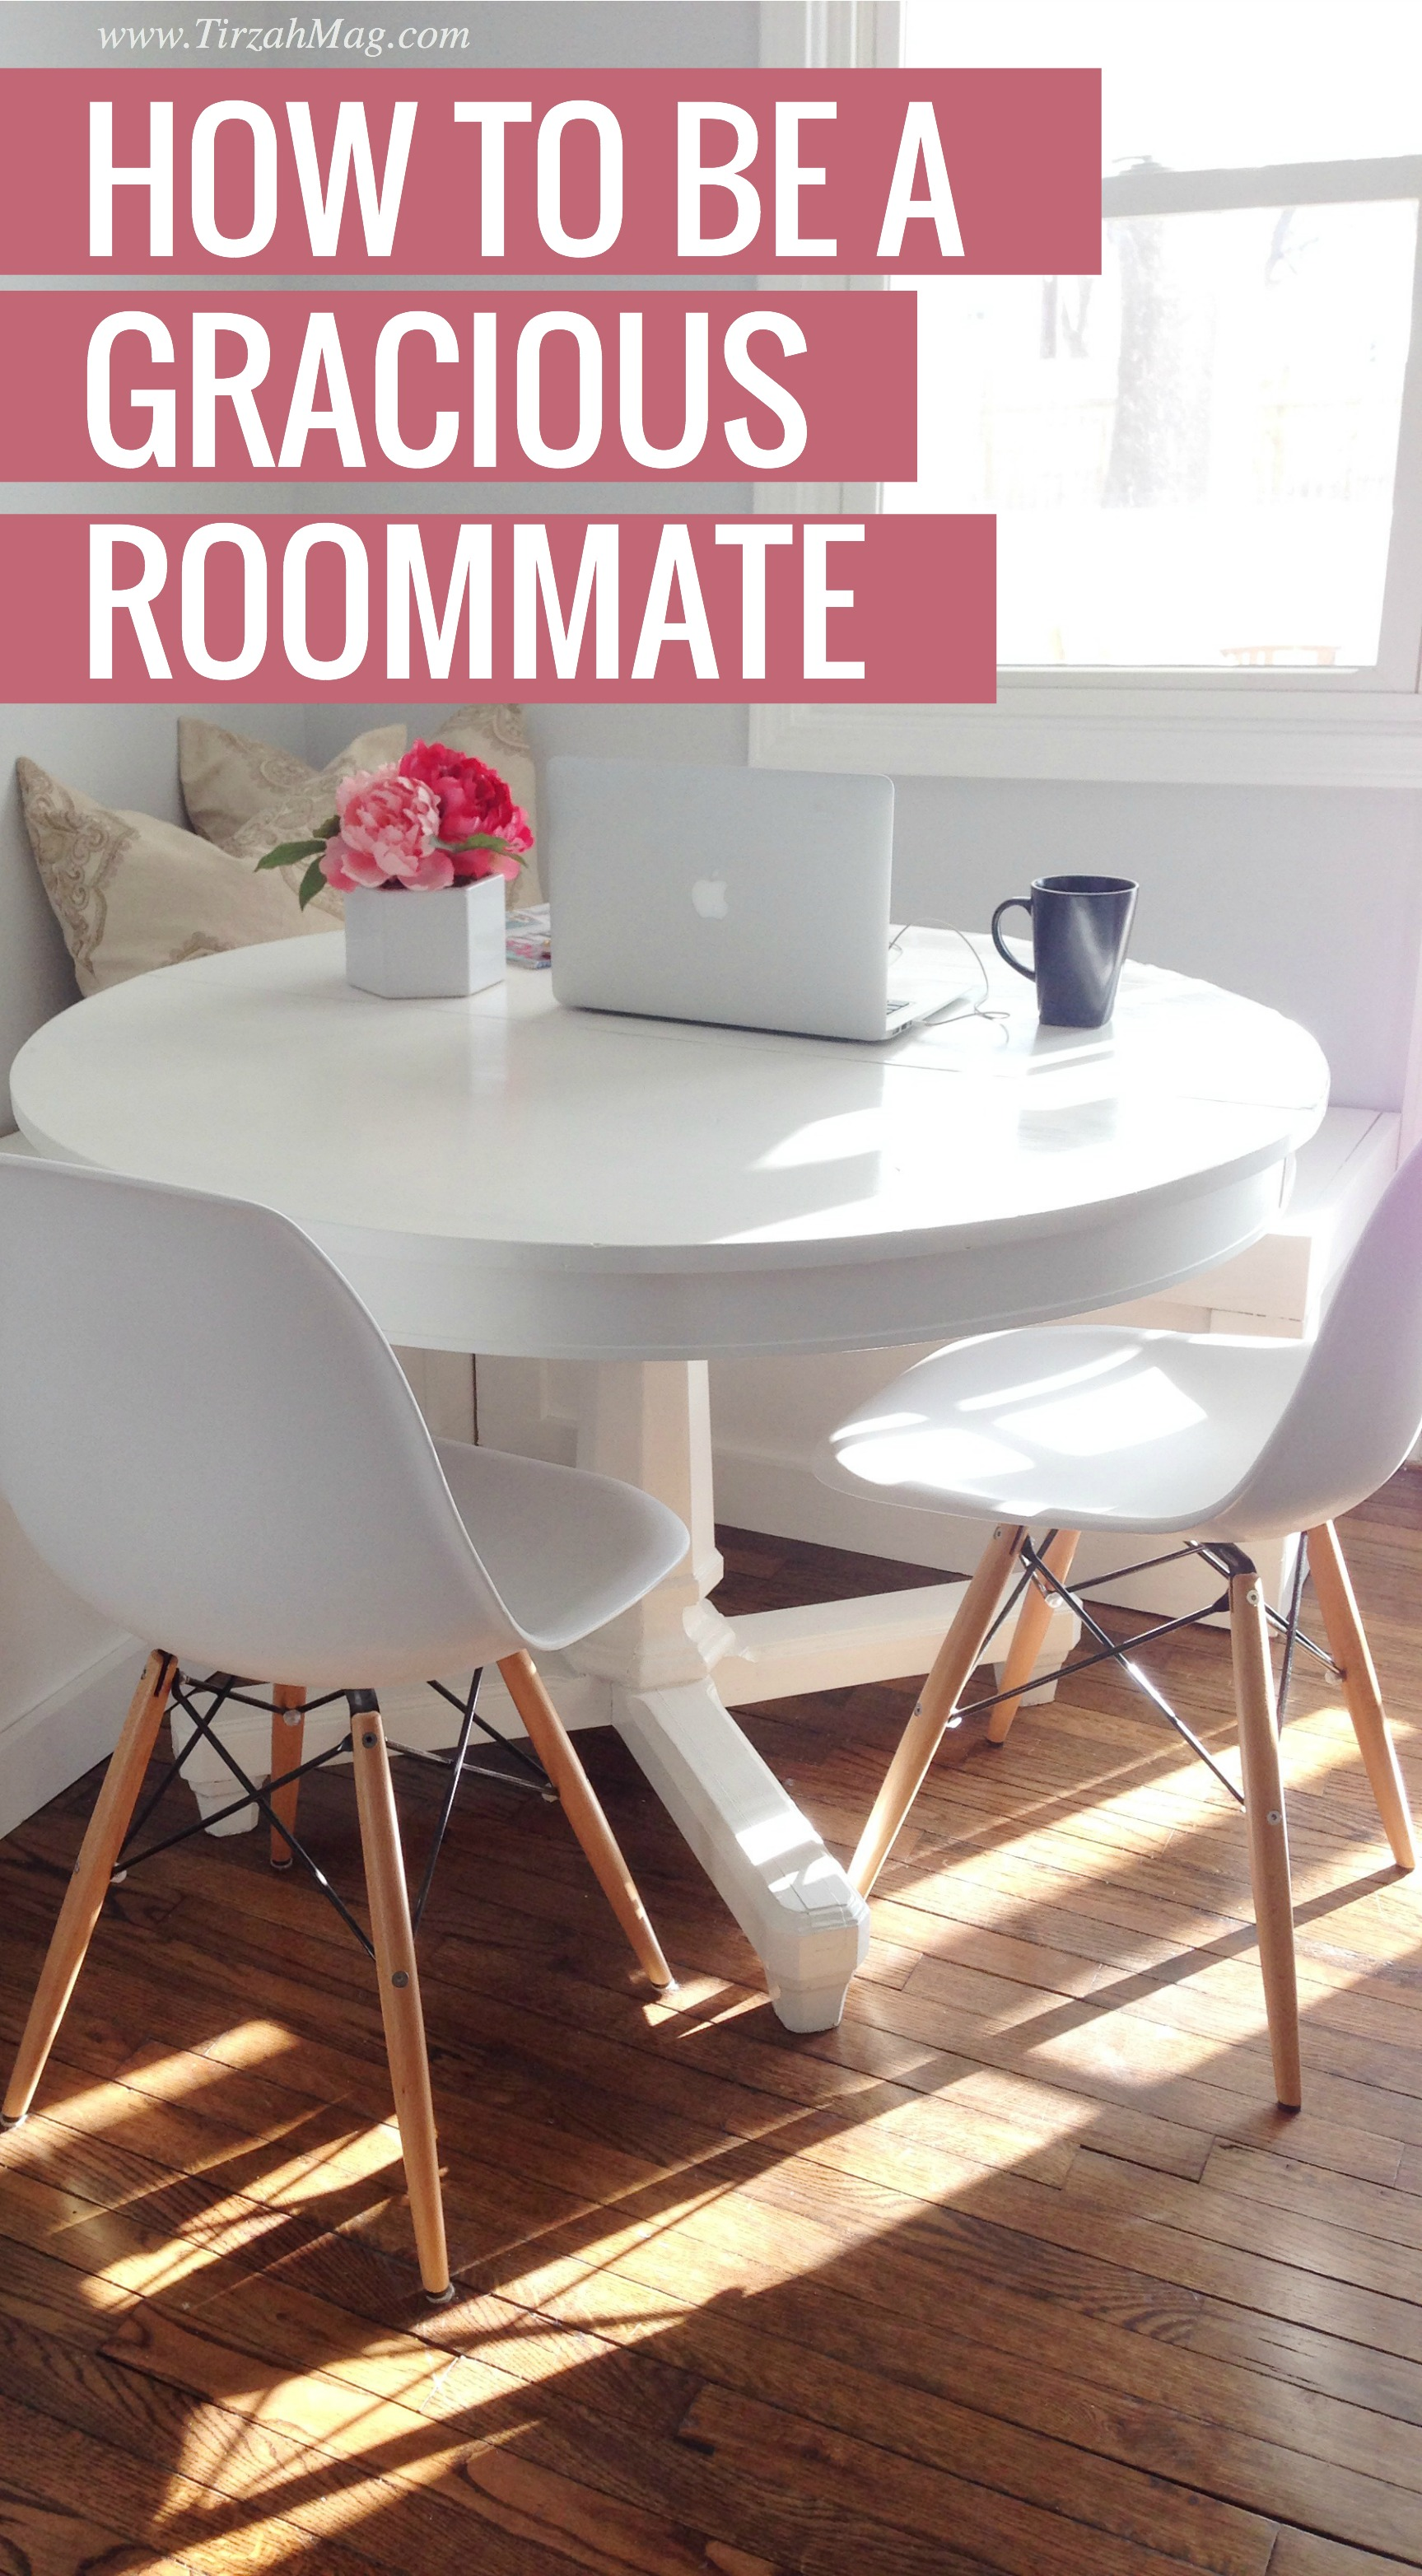 Whether you're living in the dorms or moving in for the first time with your significant other, these tips are gold